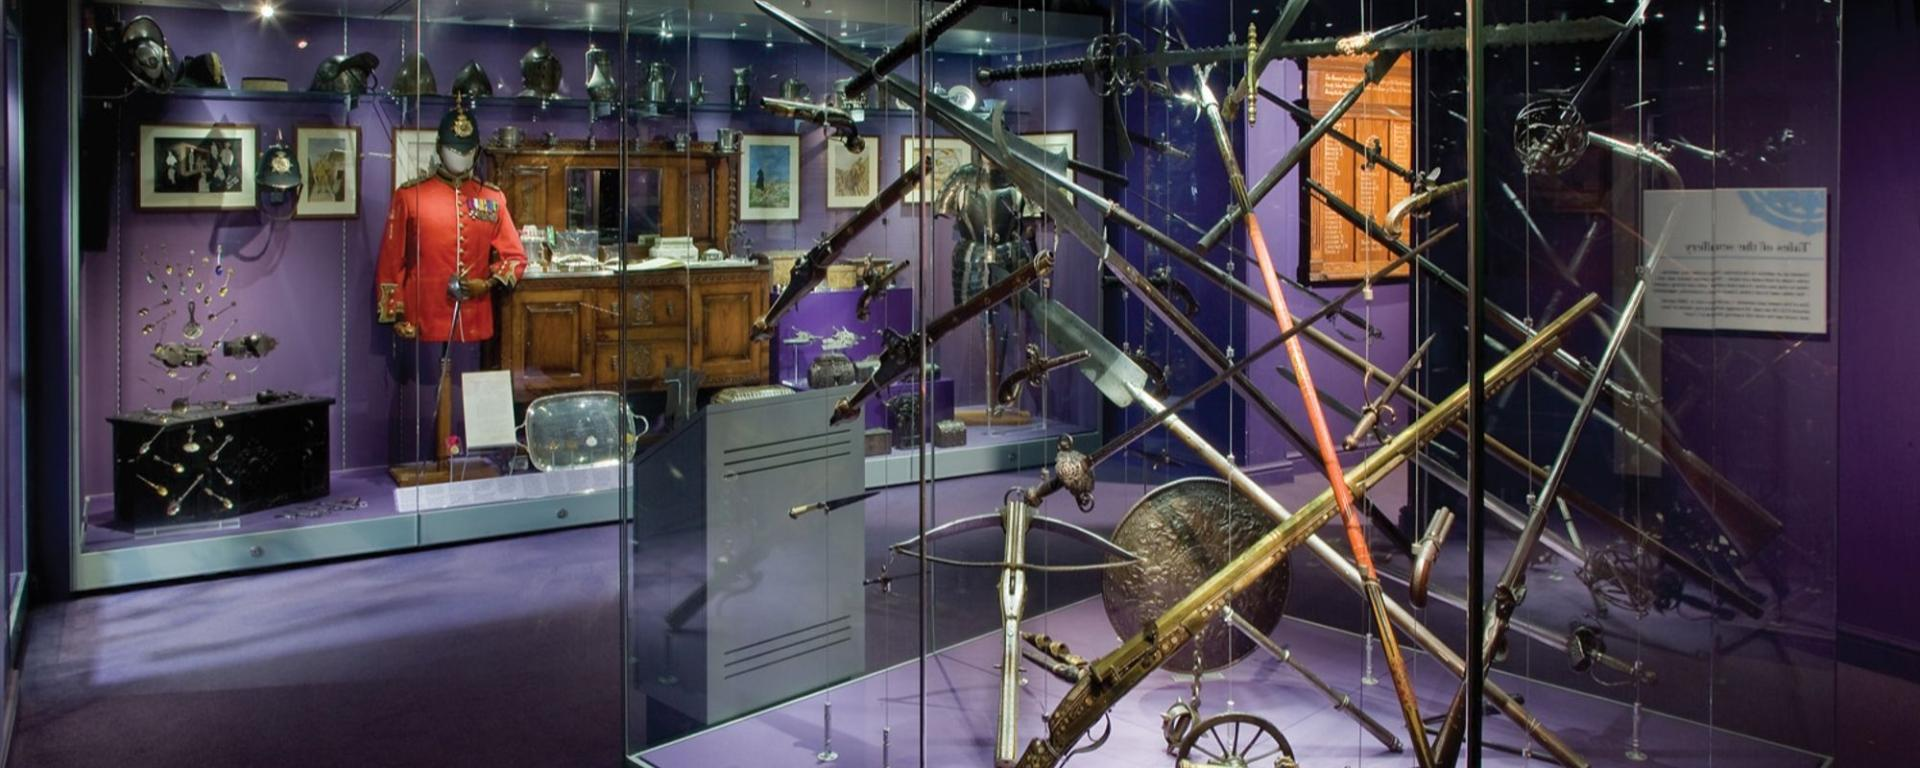 Weapon Explosion In One Of The Galleries In Preston Park Museum